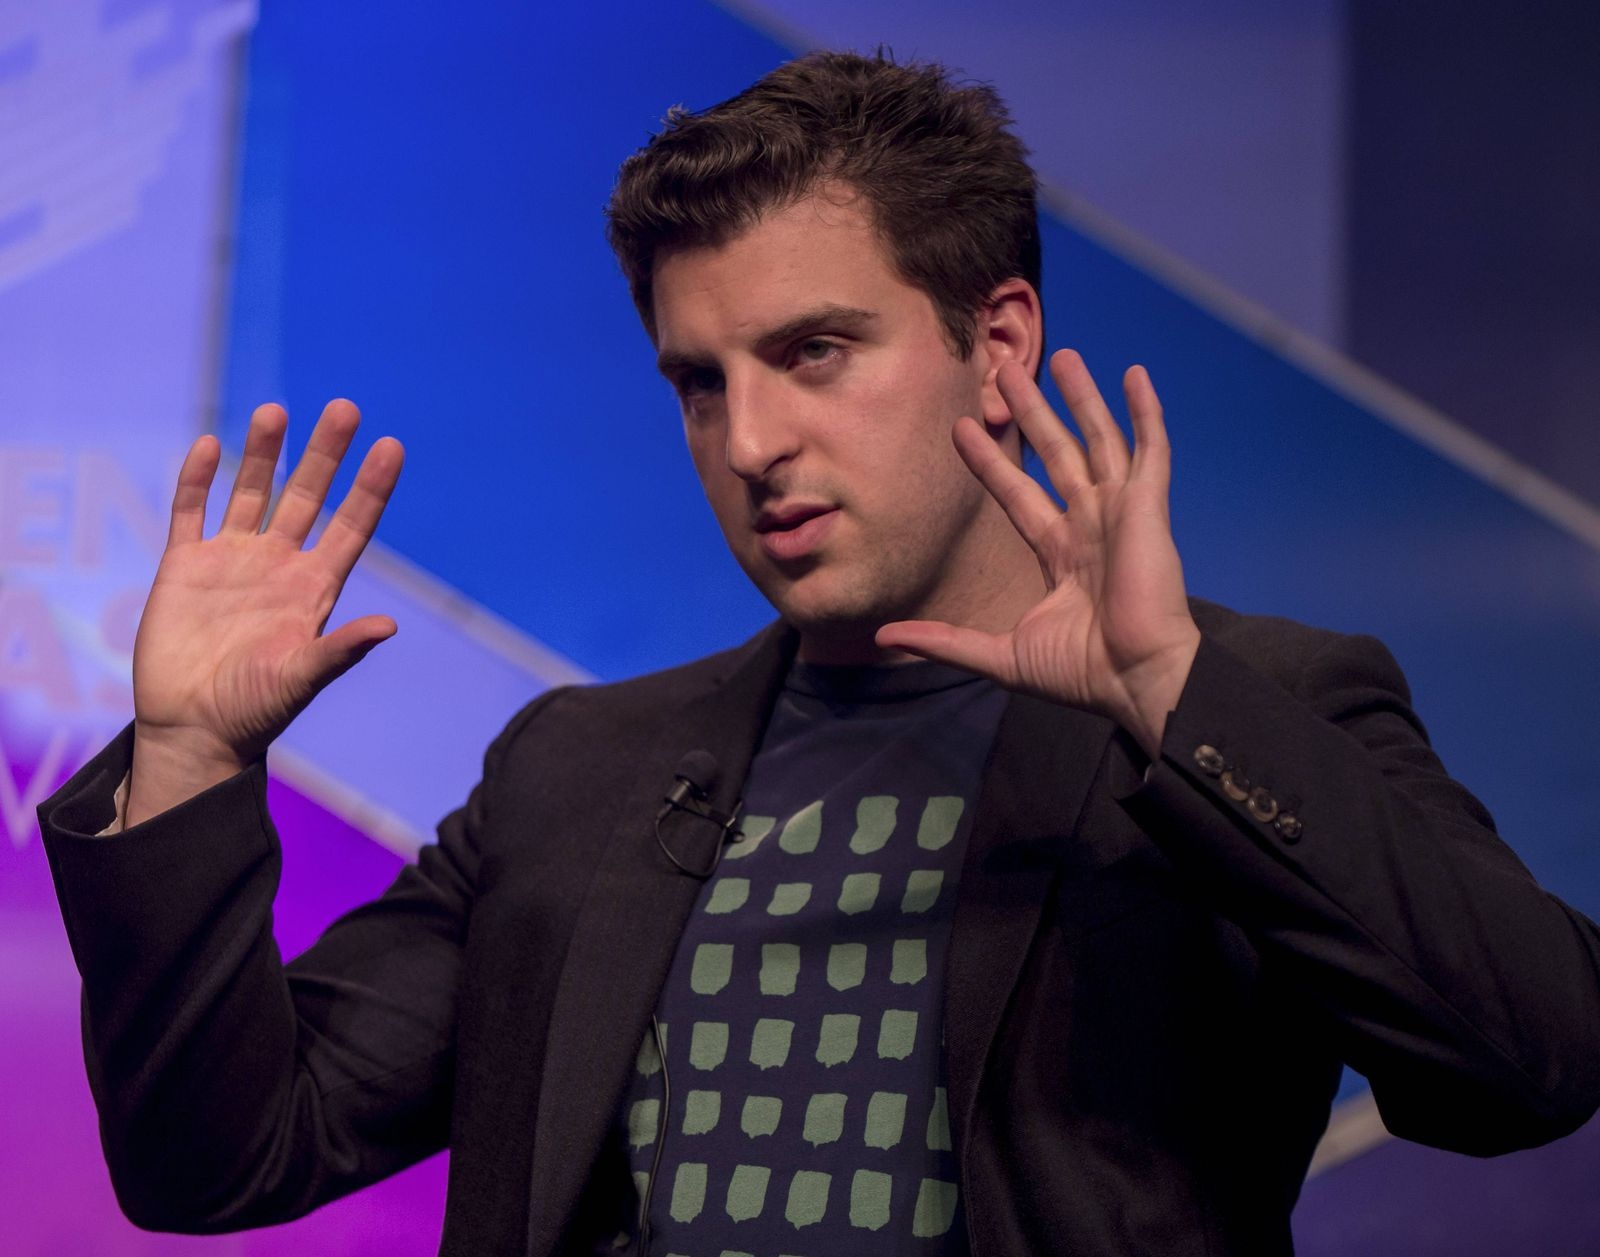 June 29, 2014 - Aspen, Colorado, U.S. - BRIAN CHESKY, CEO of Airbnb, discusses Airbnb: How the Sharing Economy is Redef